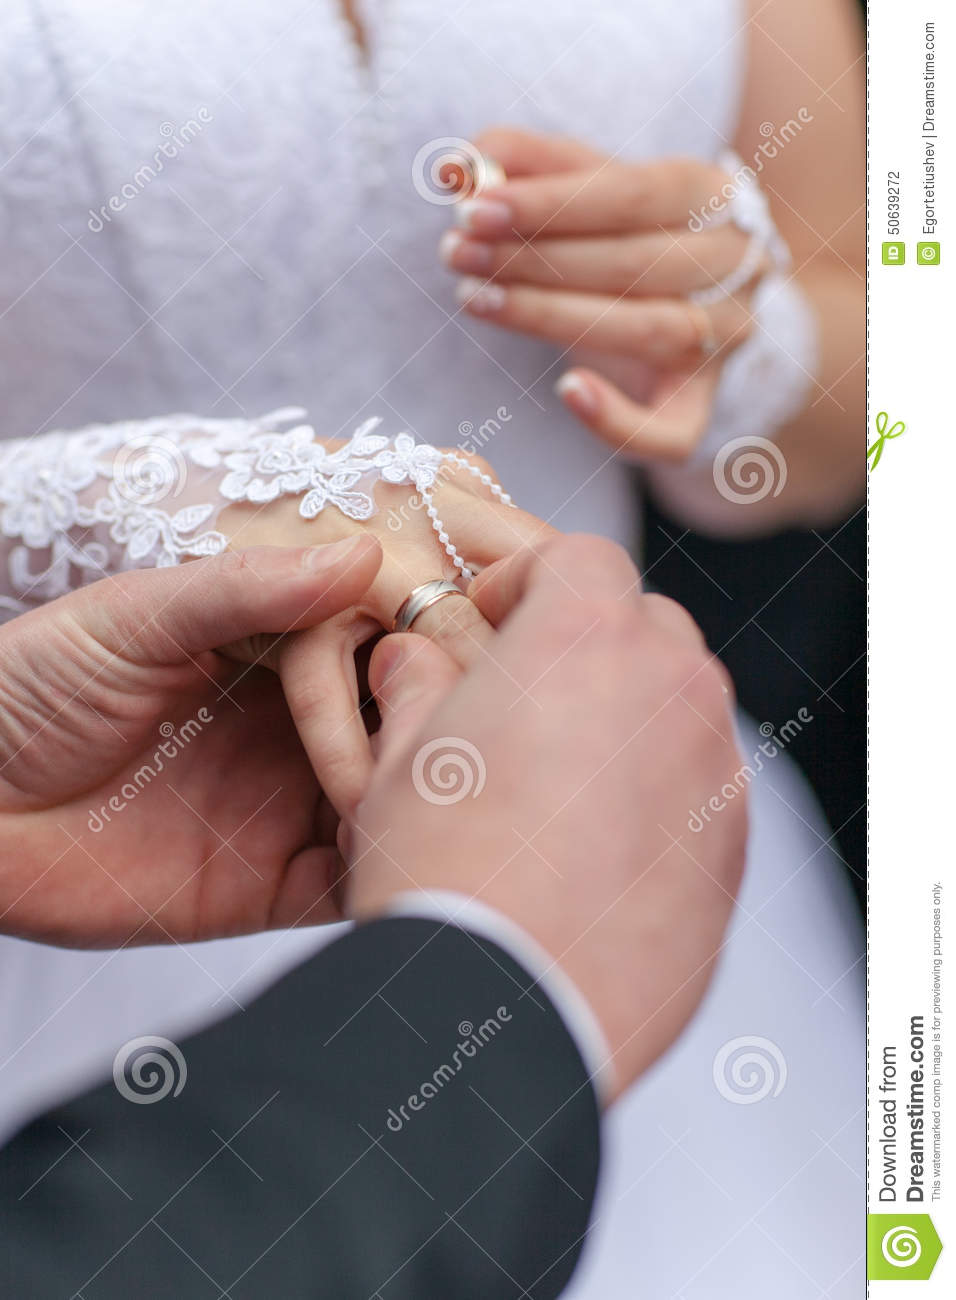 Putting the wedding ring stock photo. Image of married - 50639272